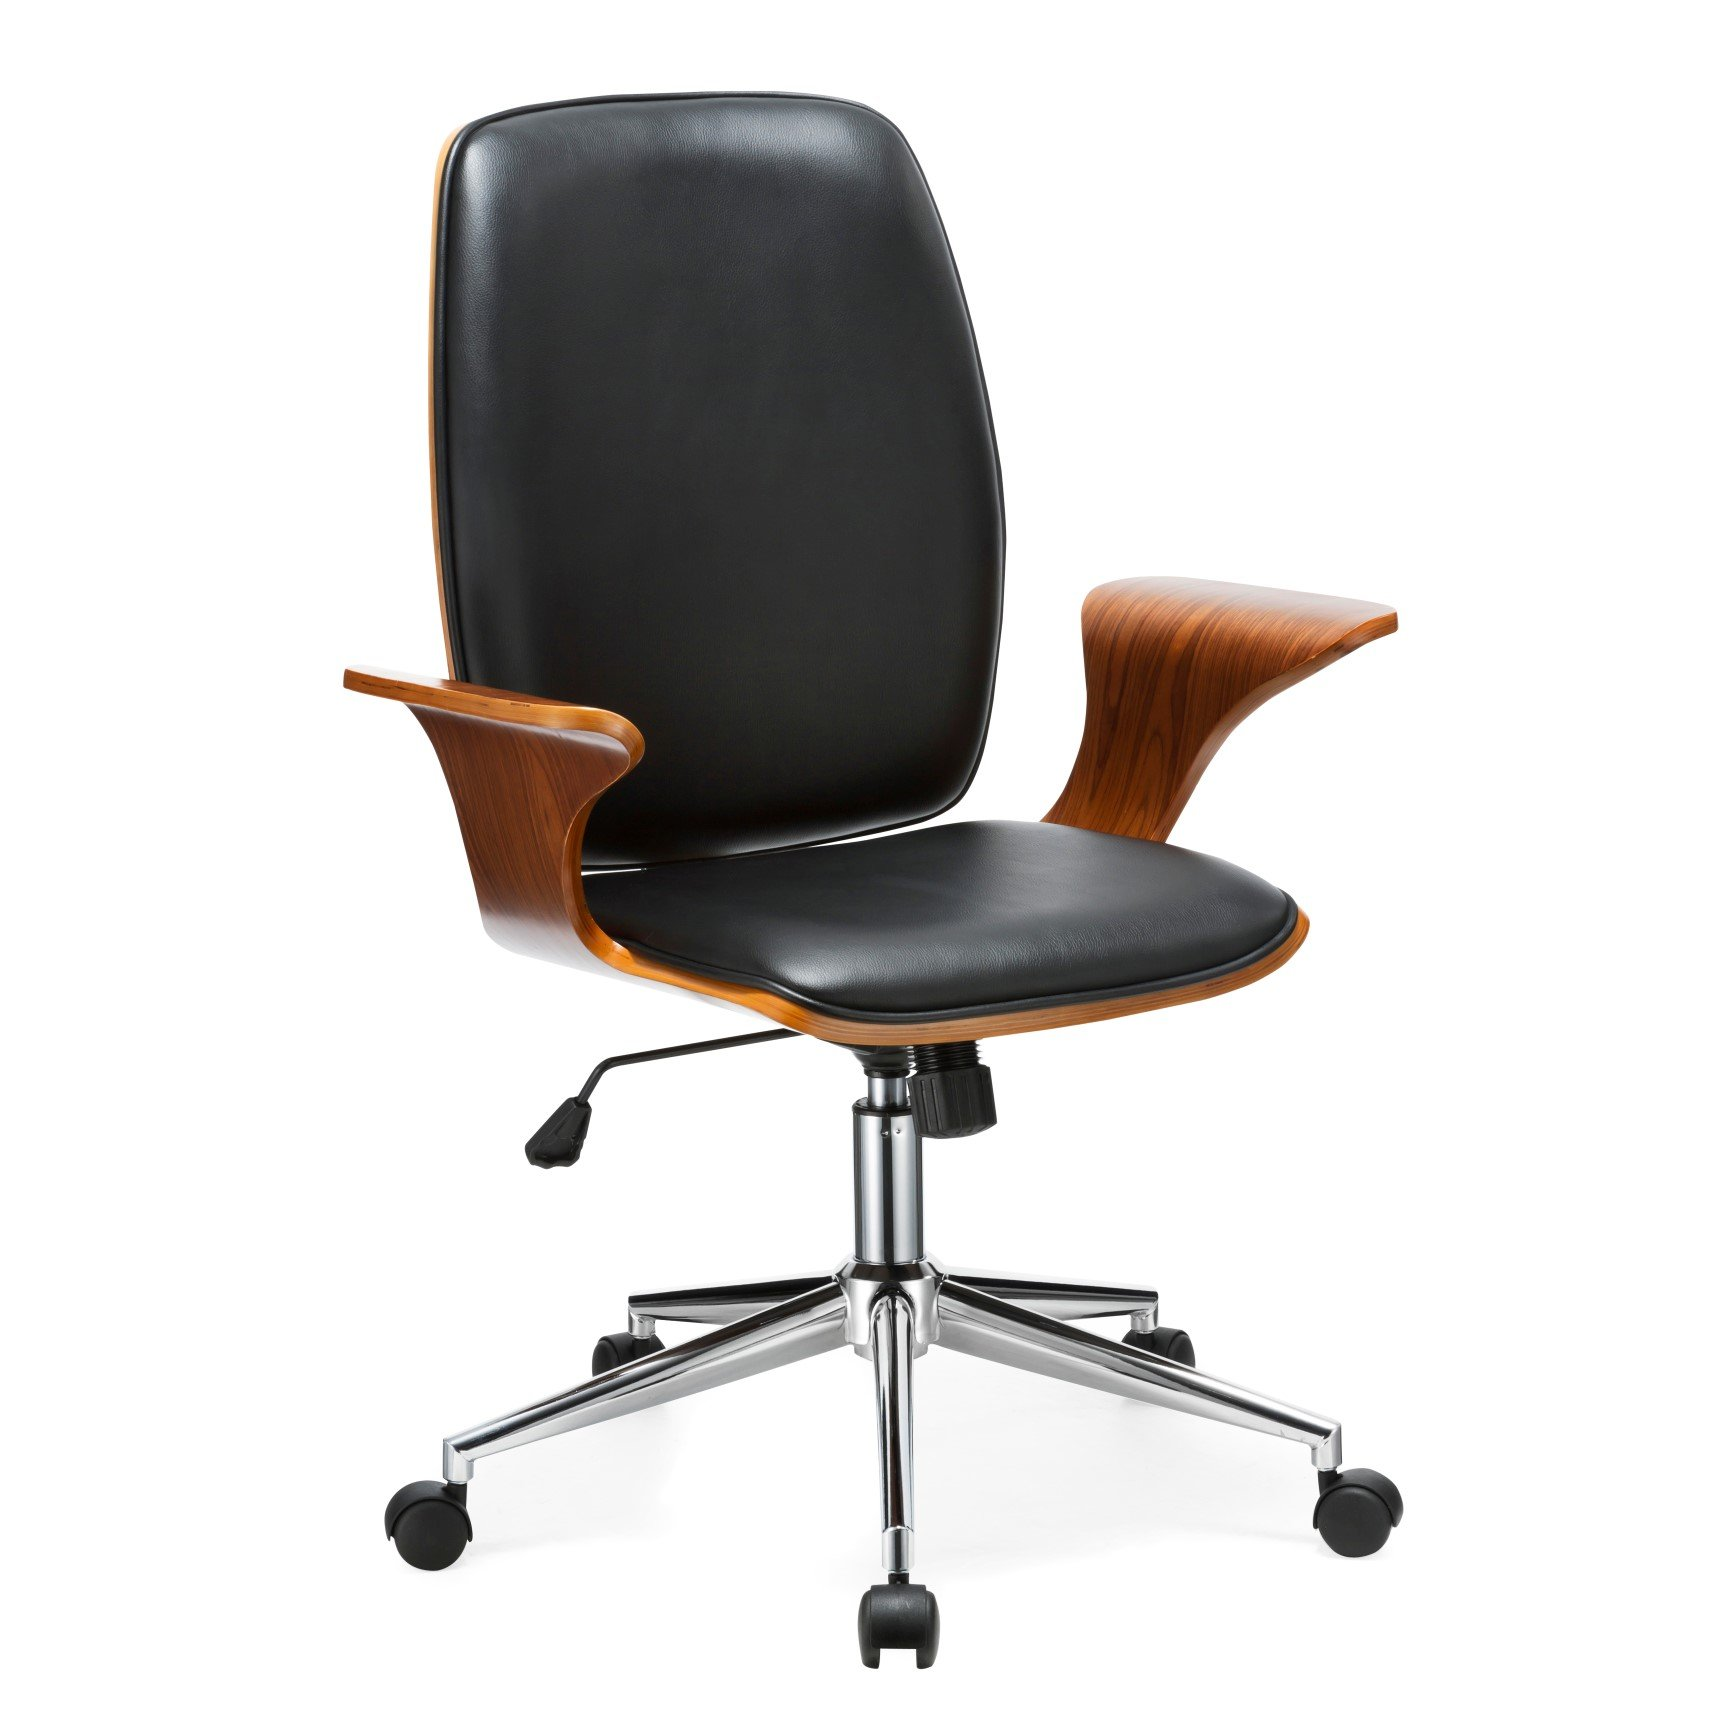 Porthos Home TFC001A BLK Lennon Comfortable, Stylish with Armrests, Height Adjustable, Ergonomic, Executive Wheels Retro Style Modern Office Chair Size 24 x 27 x 40, Black by Porthos Home